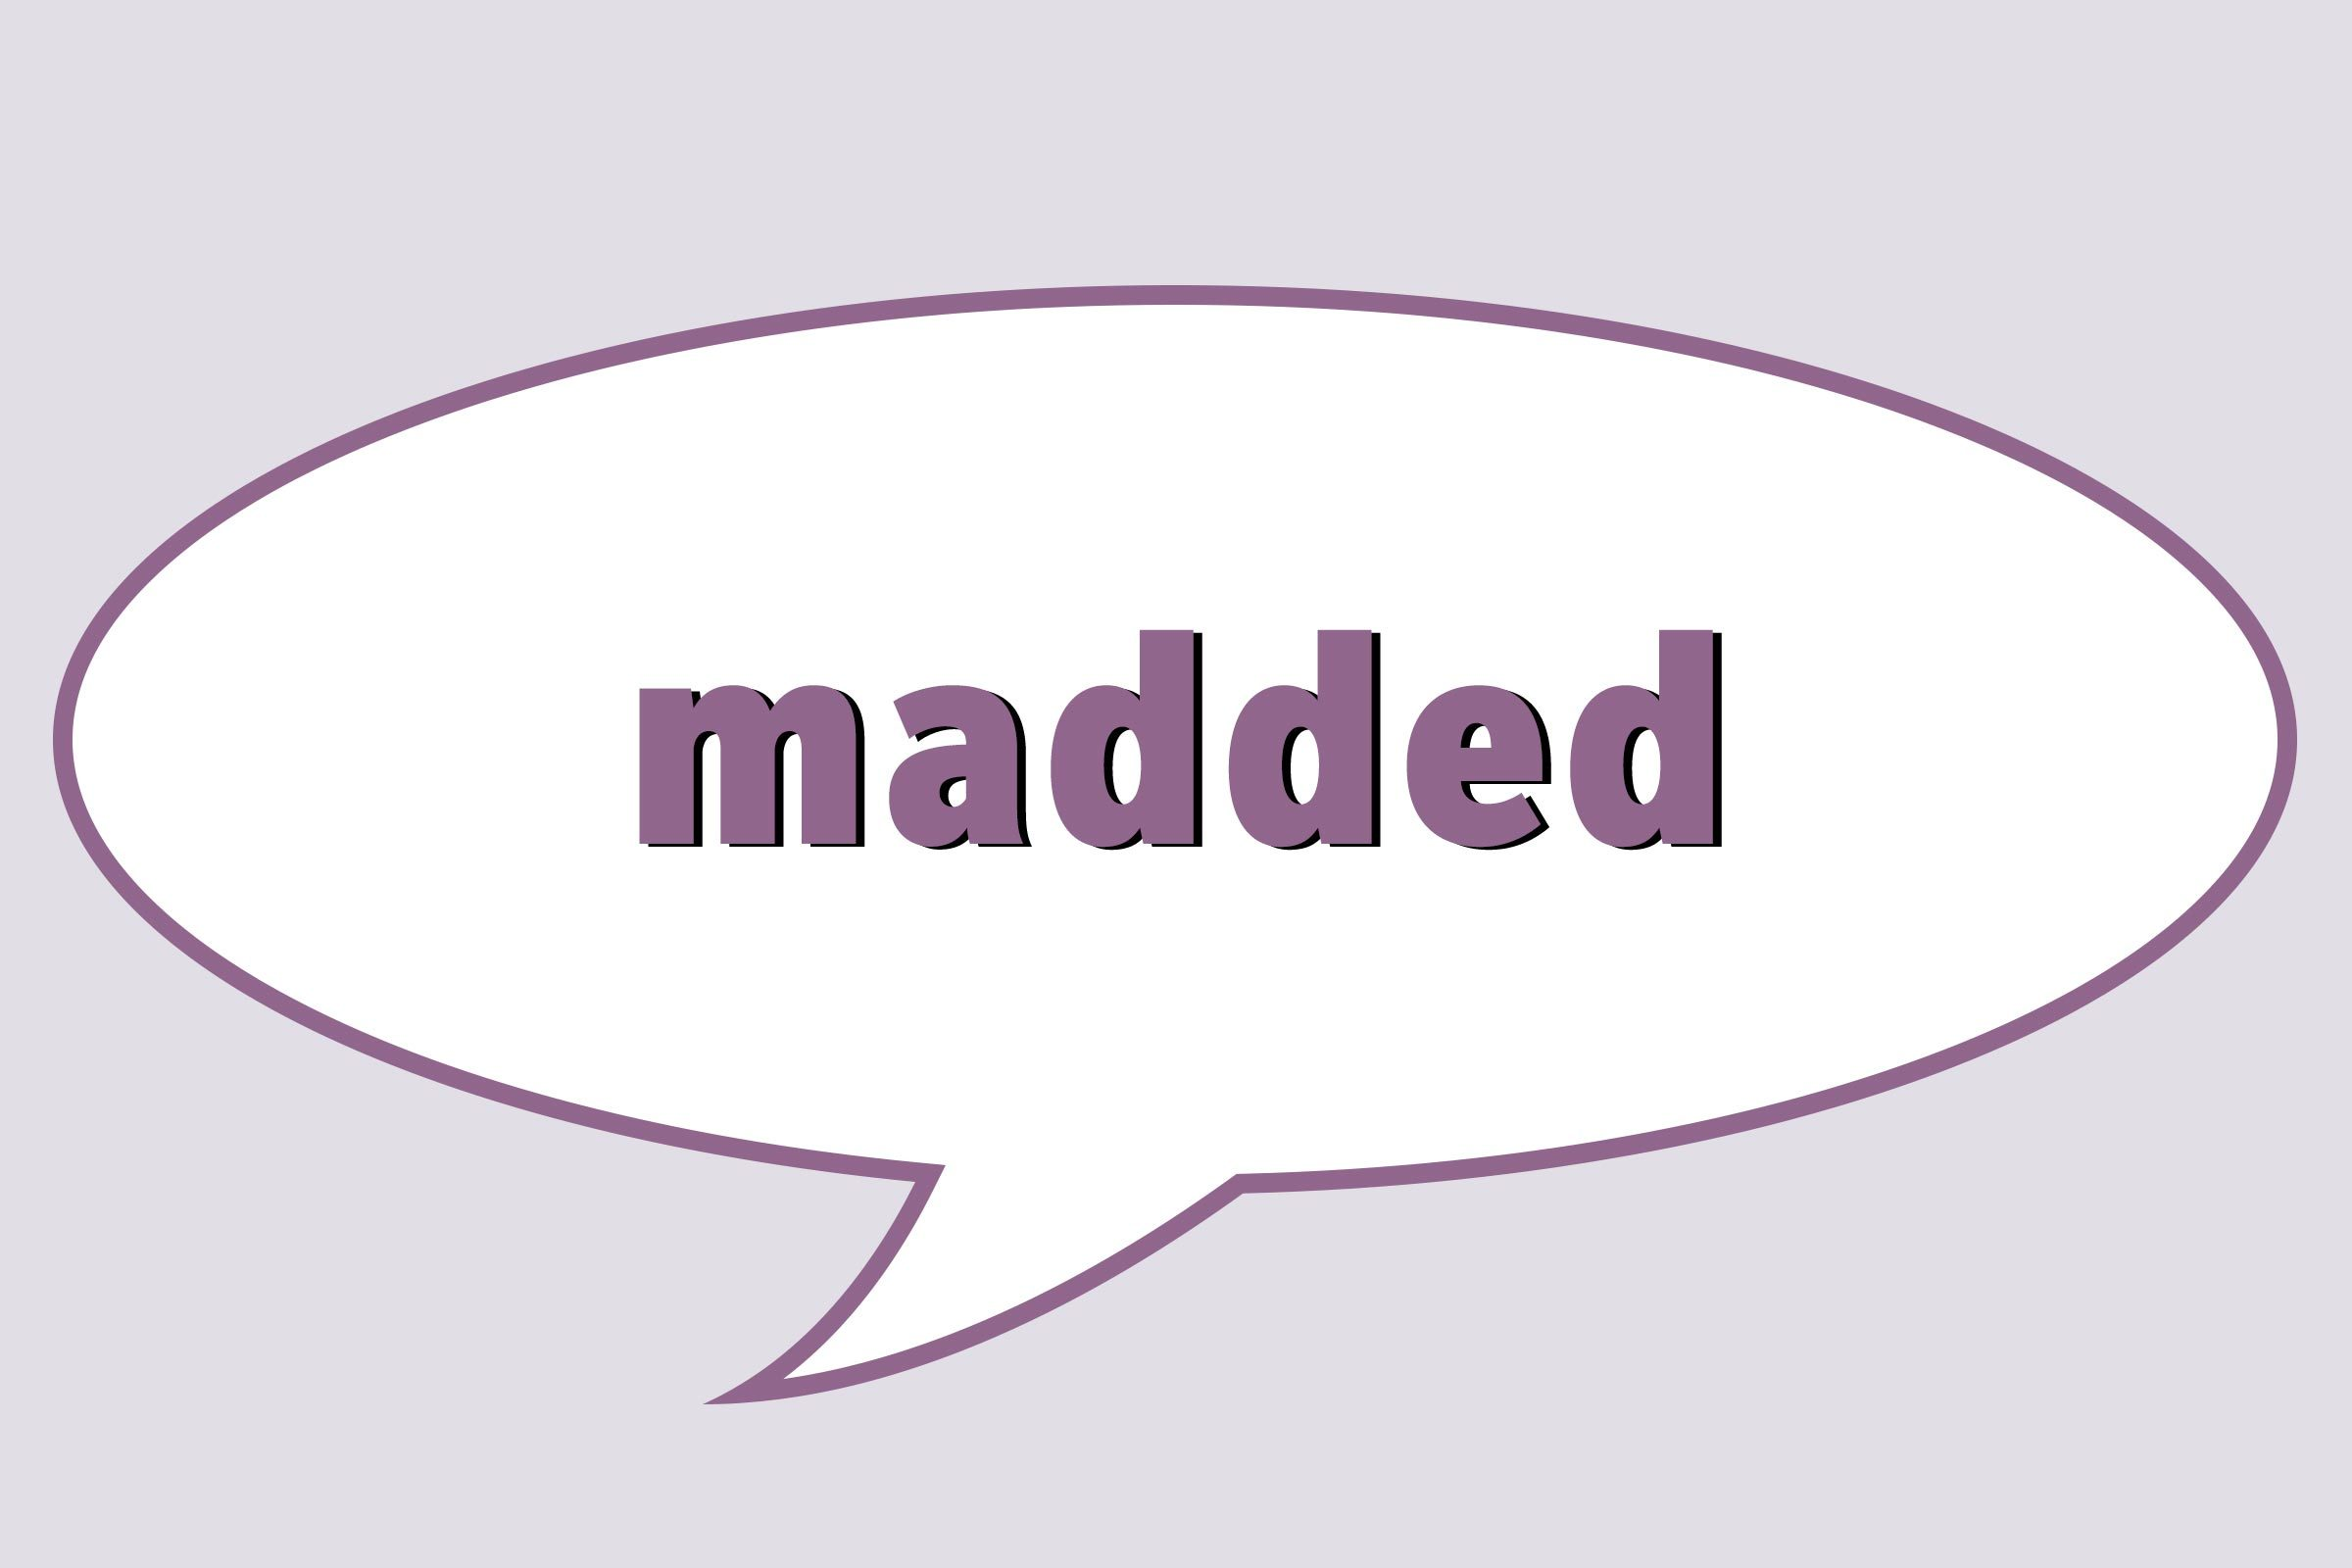 Madded